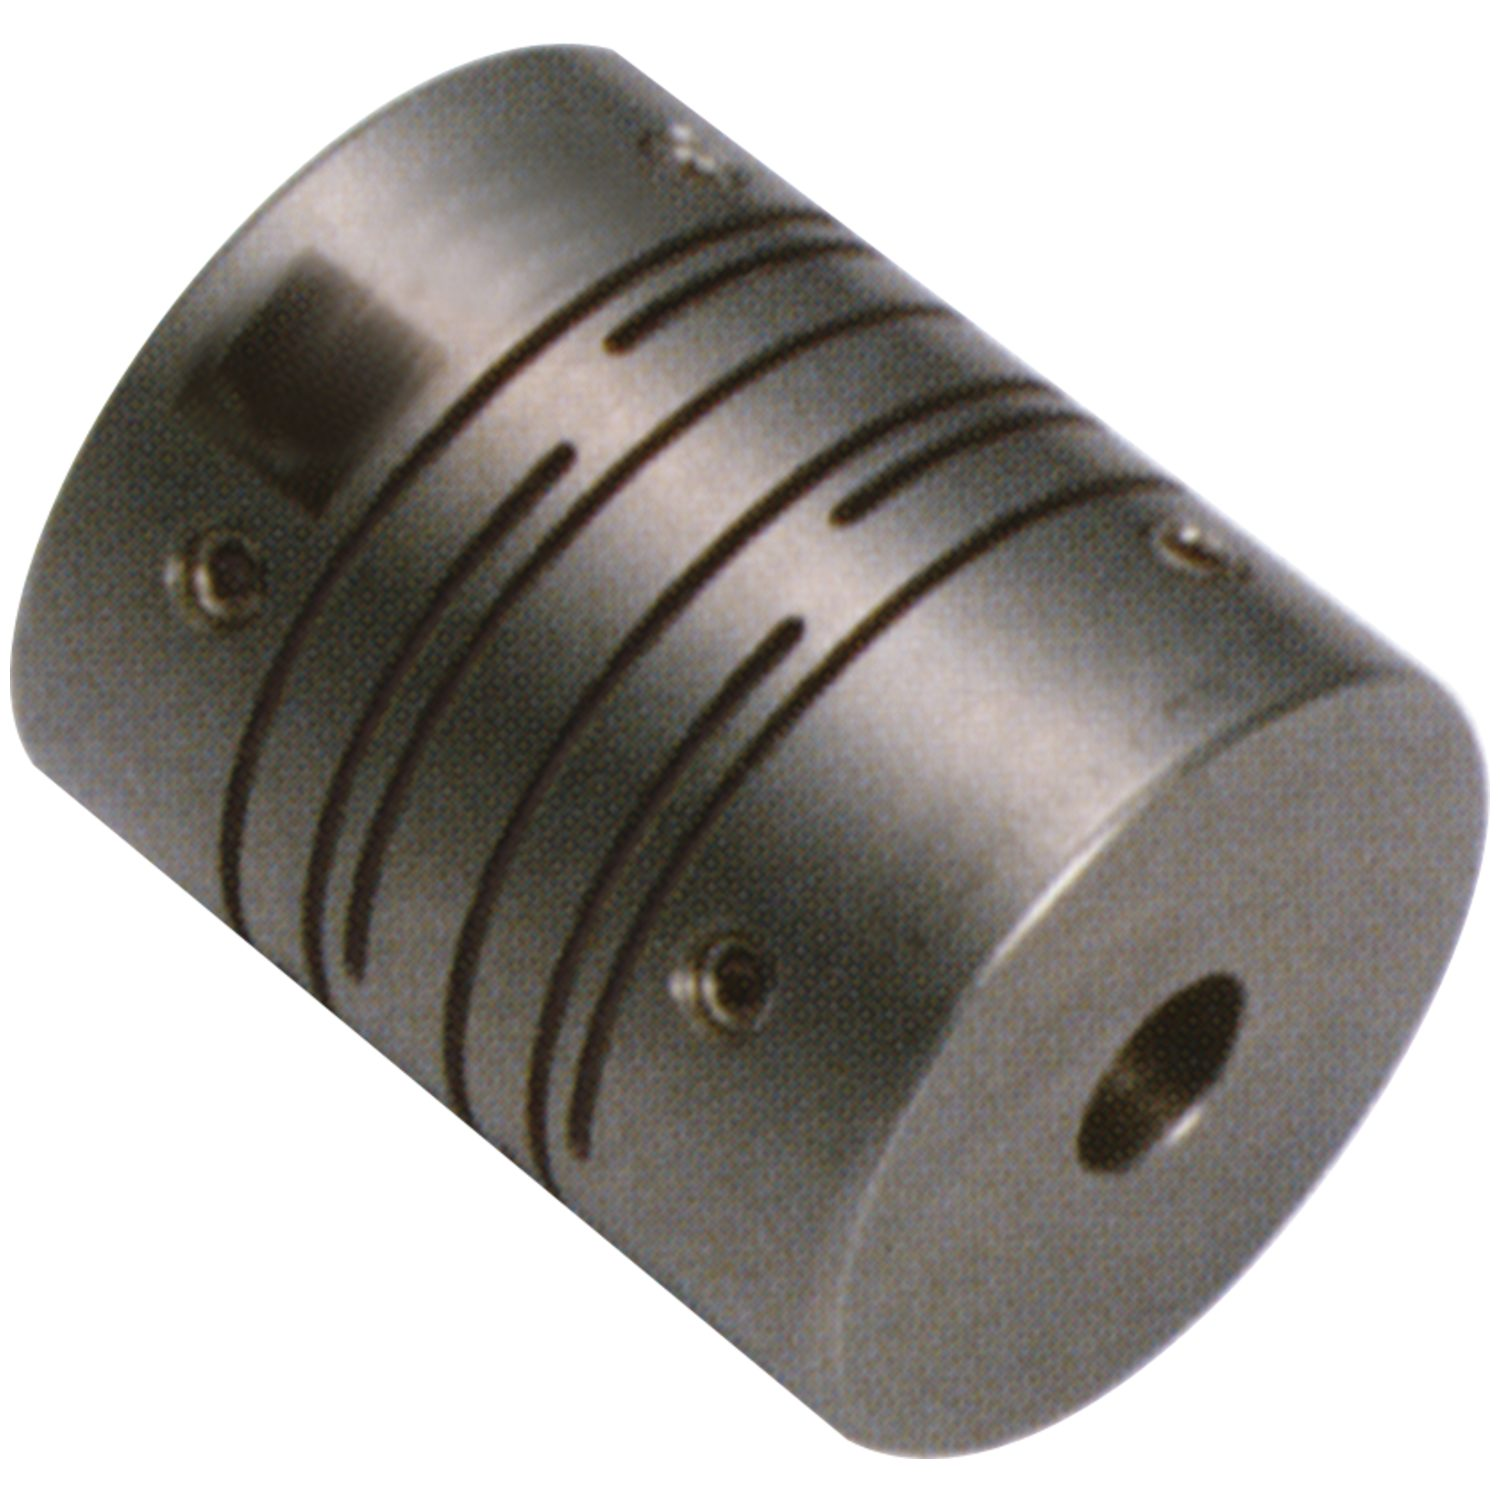 R3002.2 - Spiral Beam Coupling - Stainless Steel